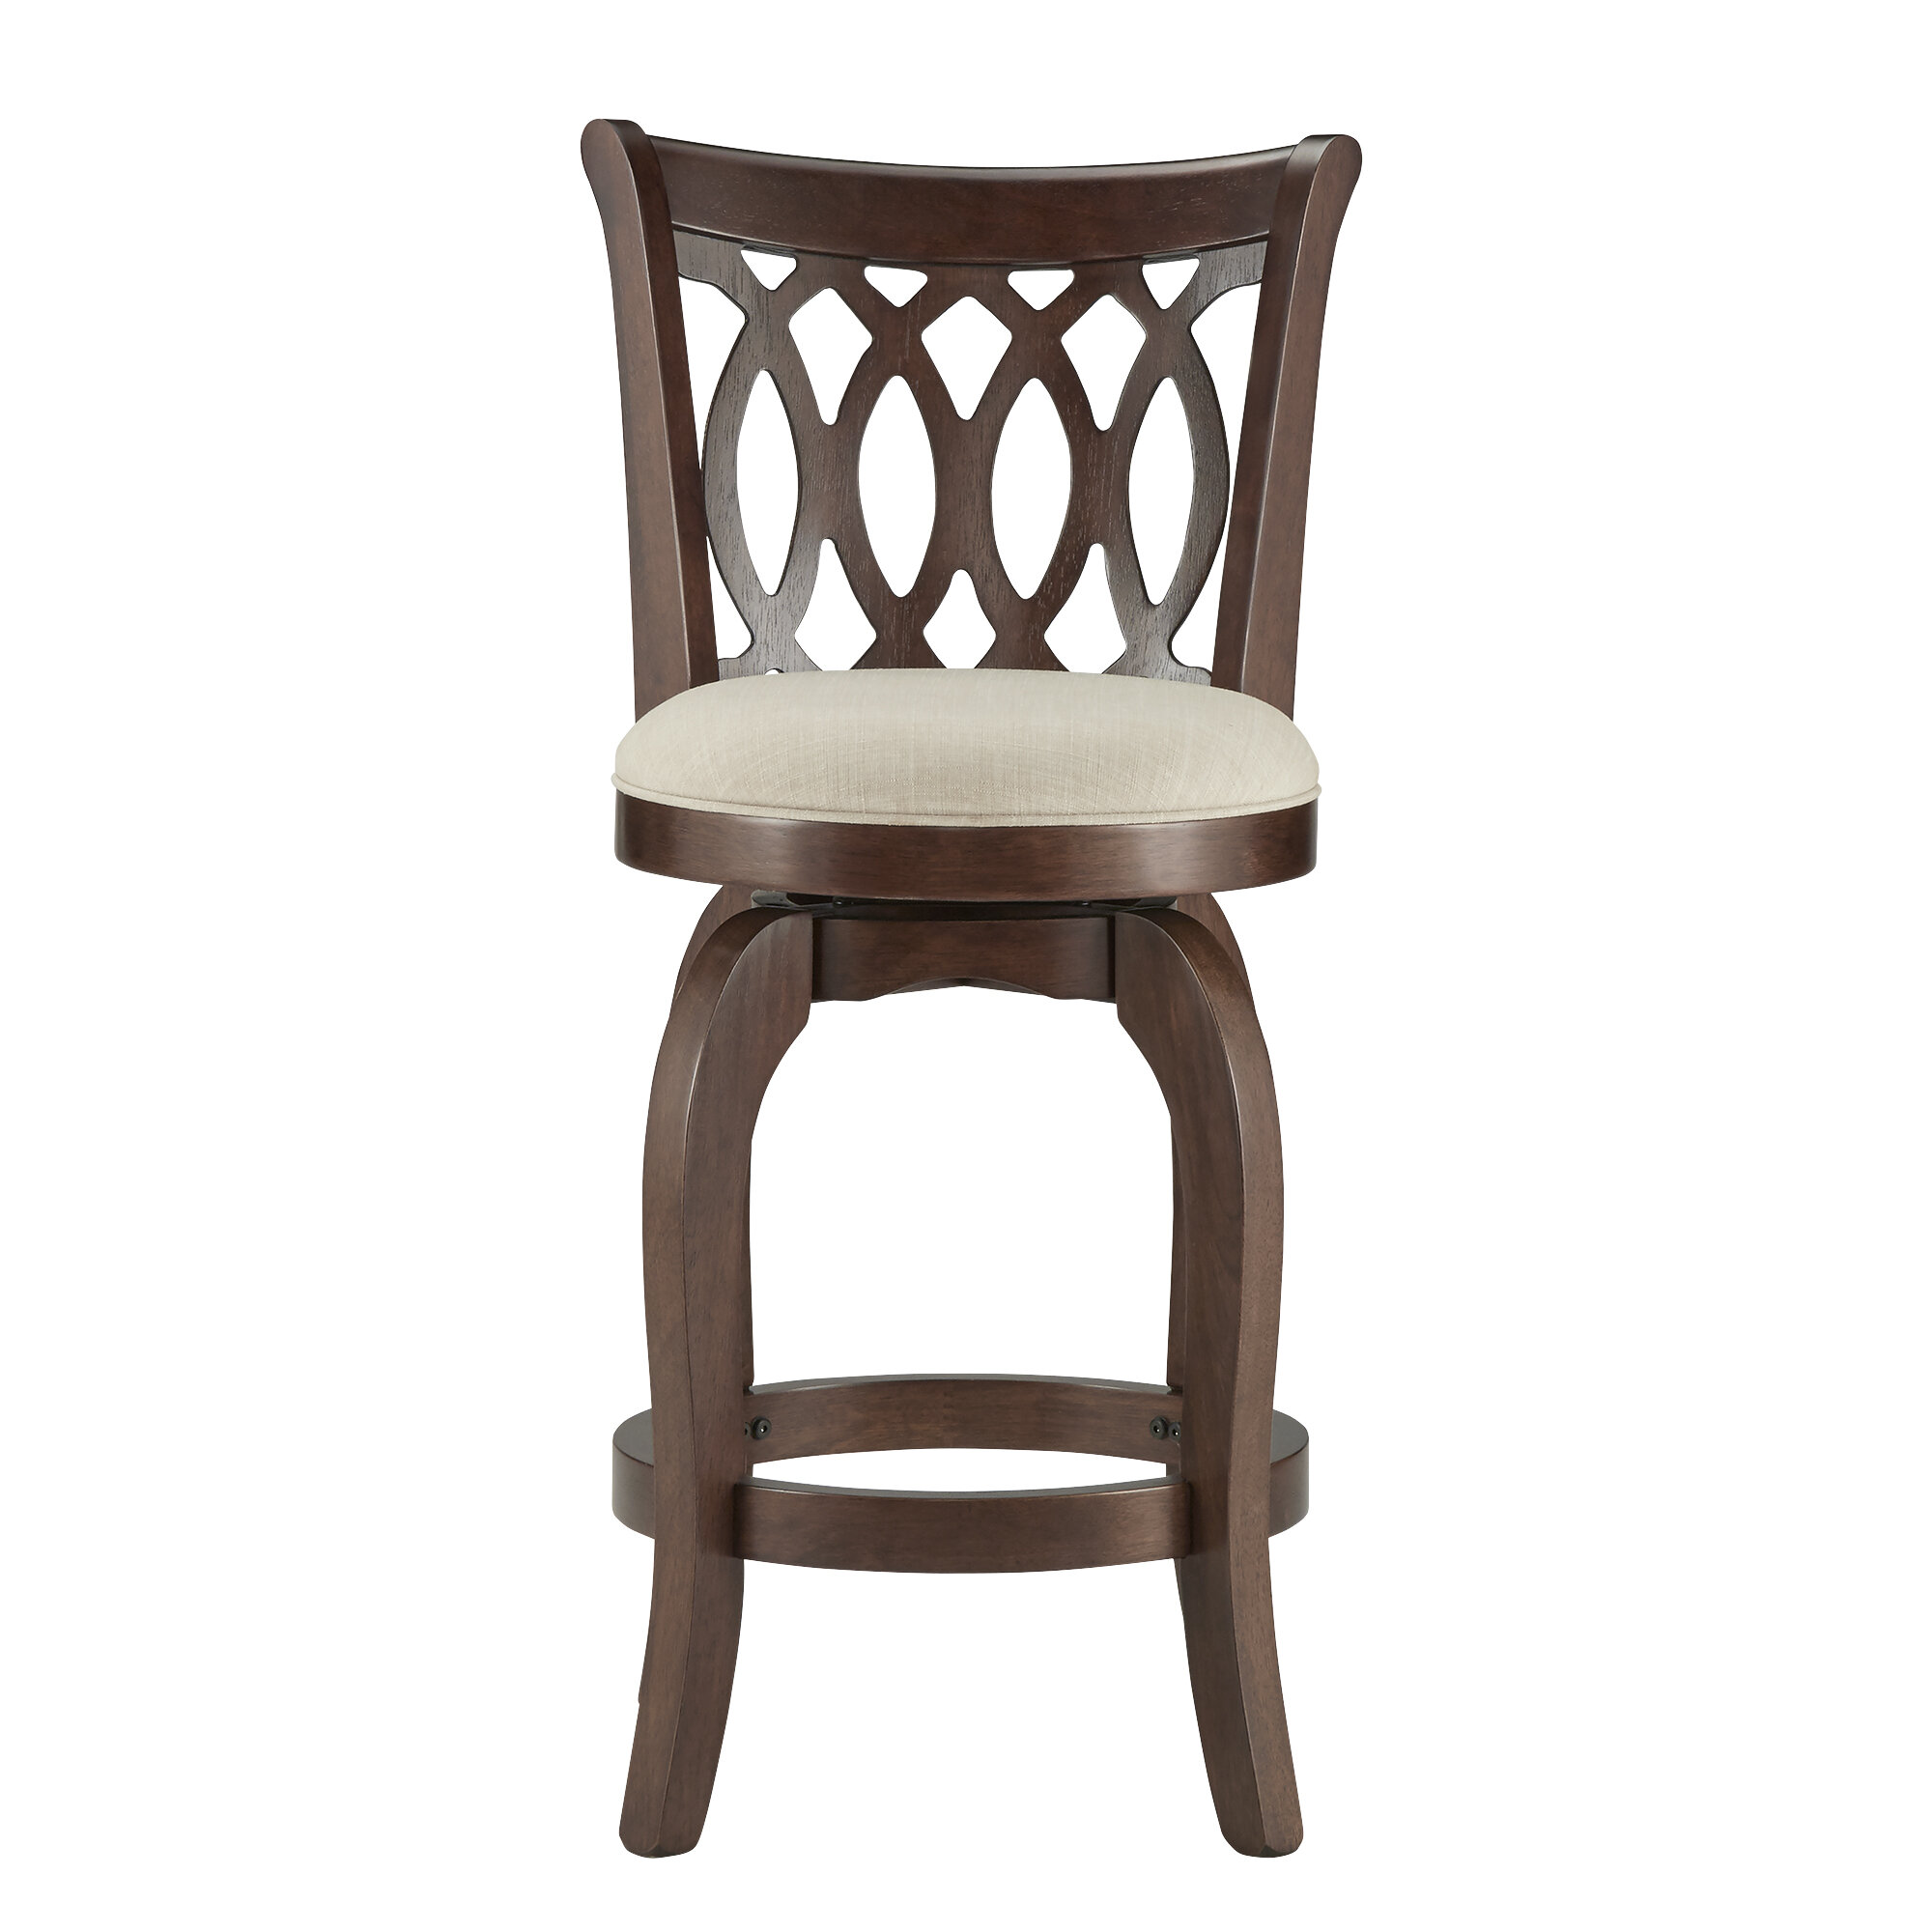 Magnificent Dupont Bar Counter Swivel Stool Creativecarmelina Interior Chair Design Creativecarmelinacom